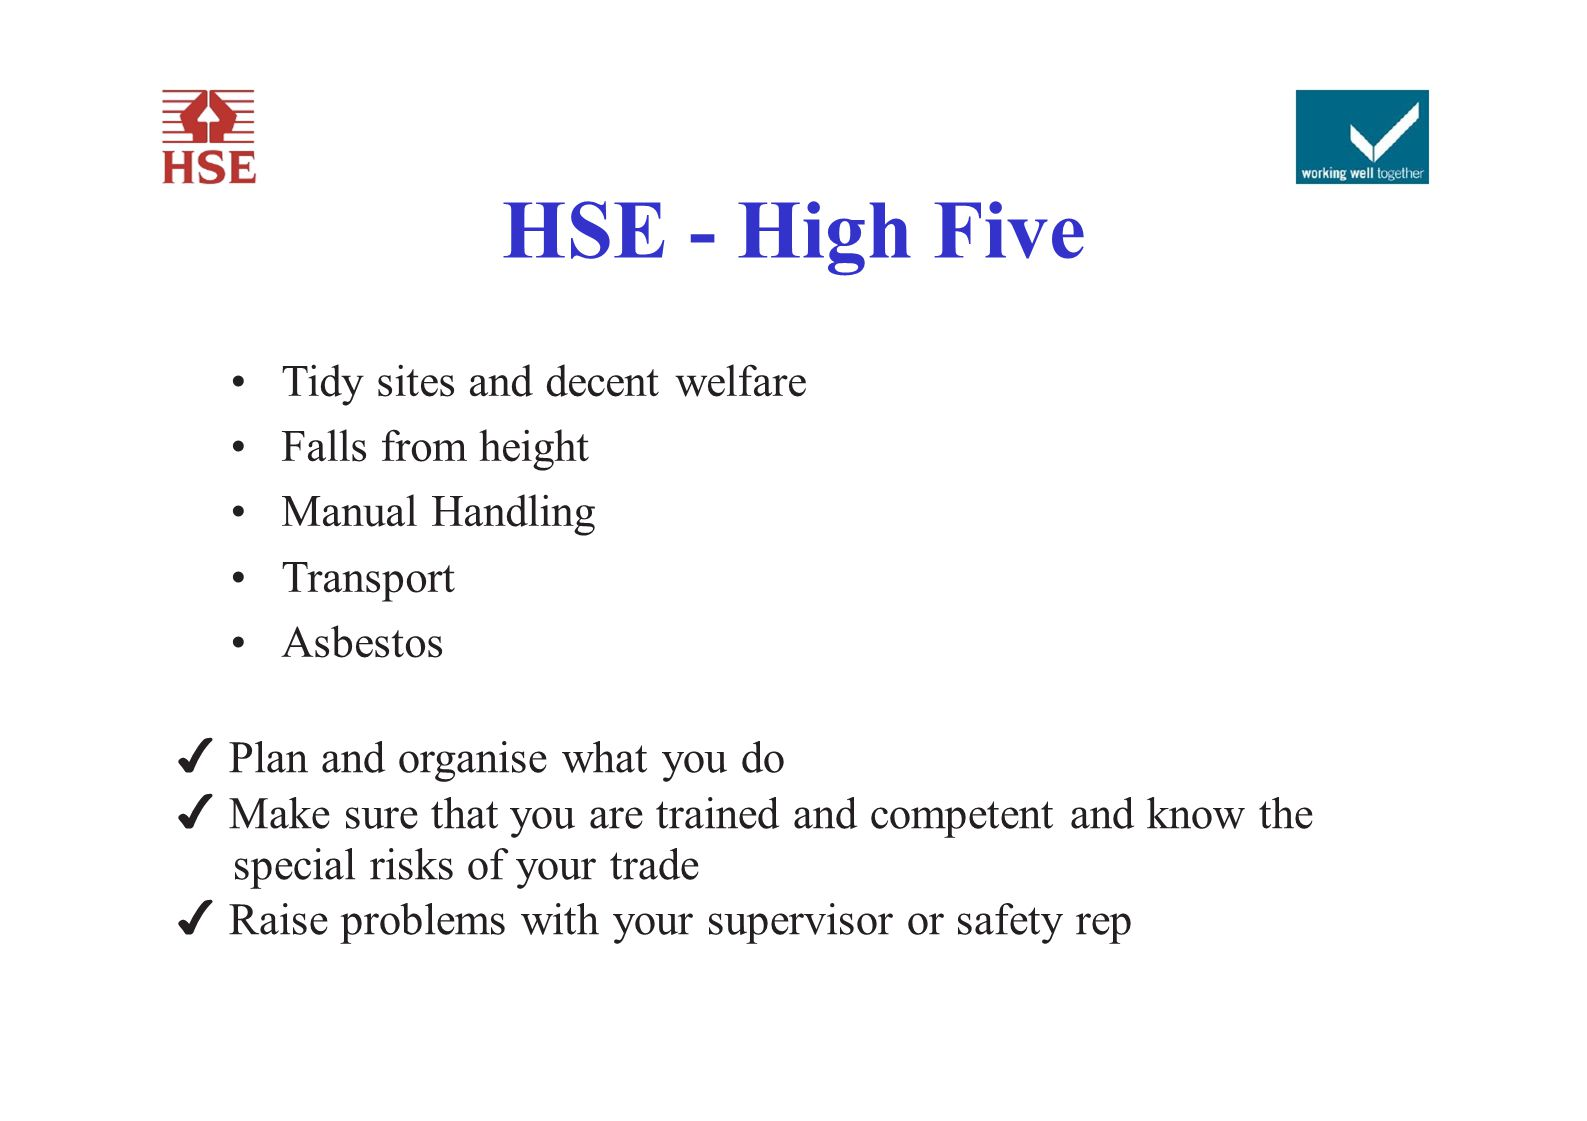 HSE - High Five Tidy sites and decent welfare Falls from height Manual Handling Transport Asbestos ✔ Plan and organise what you do ✔ Make sure that yo